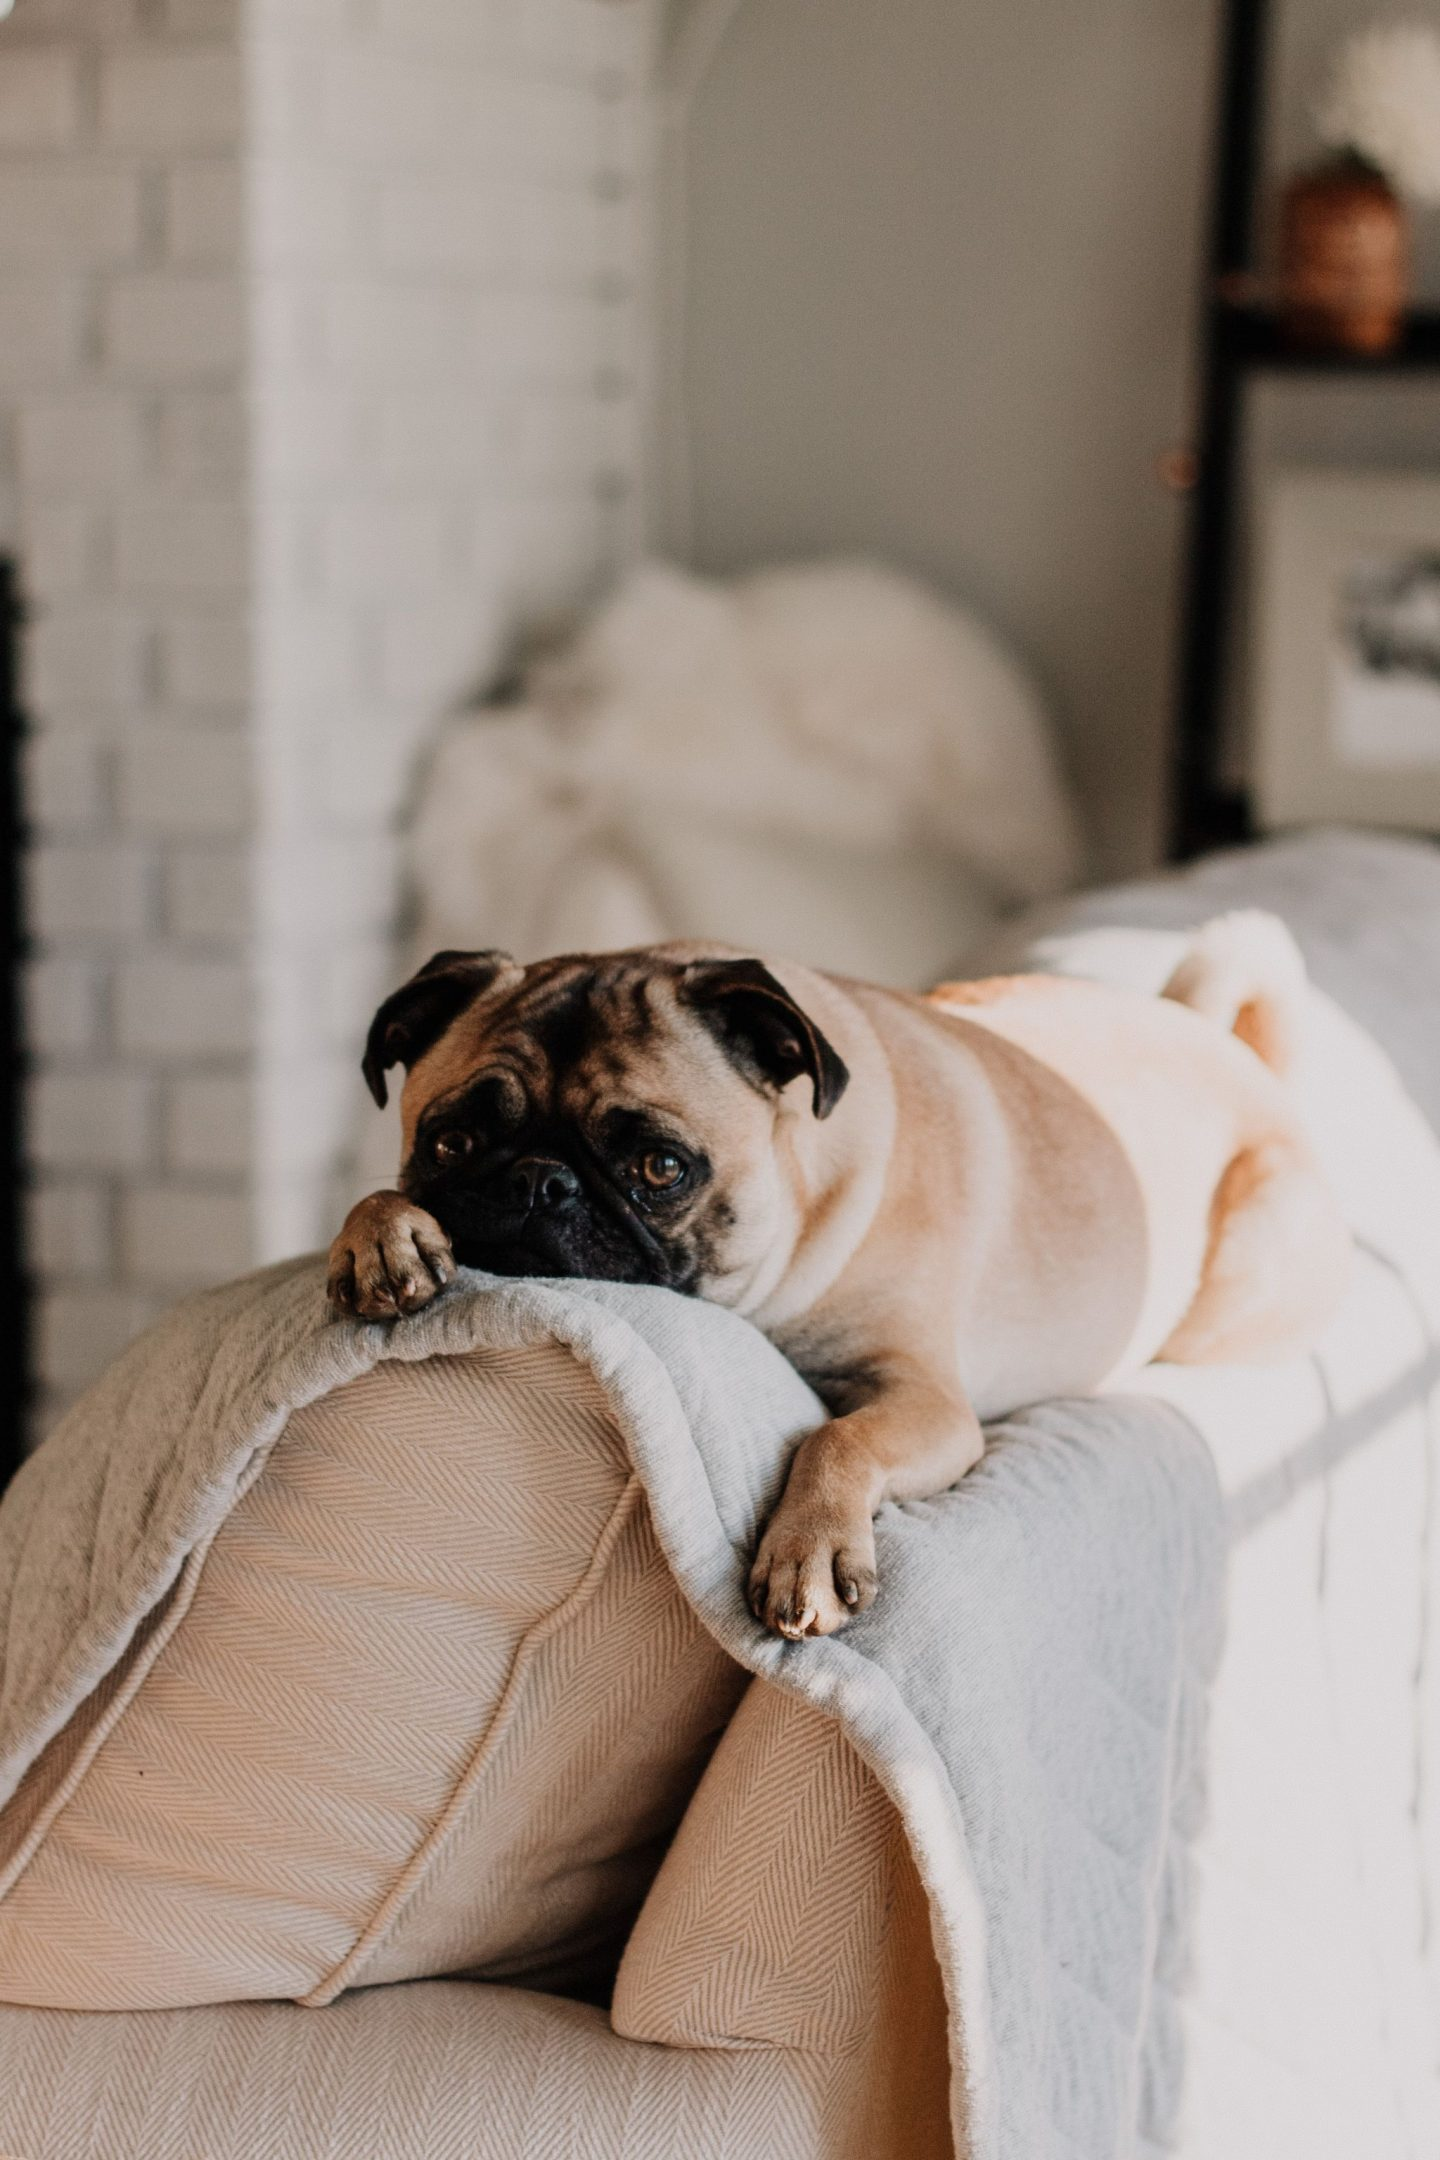 WORRIED YOUR PET WILL RUIN YOUR FURNITURE